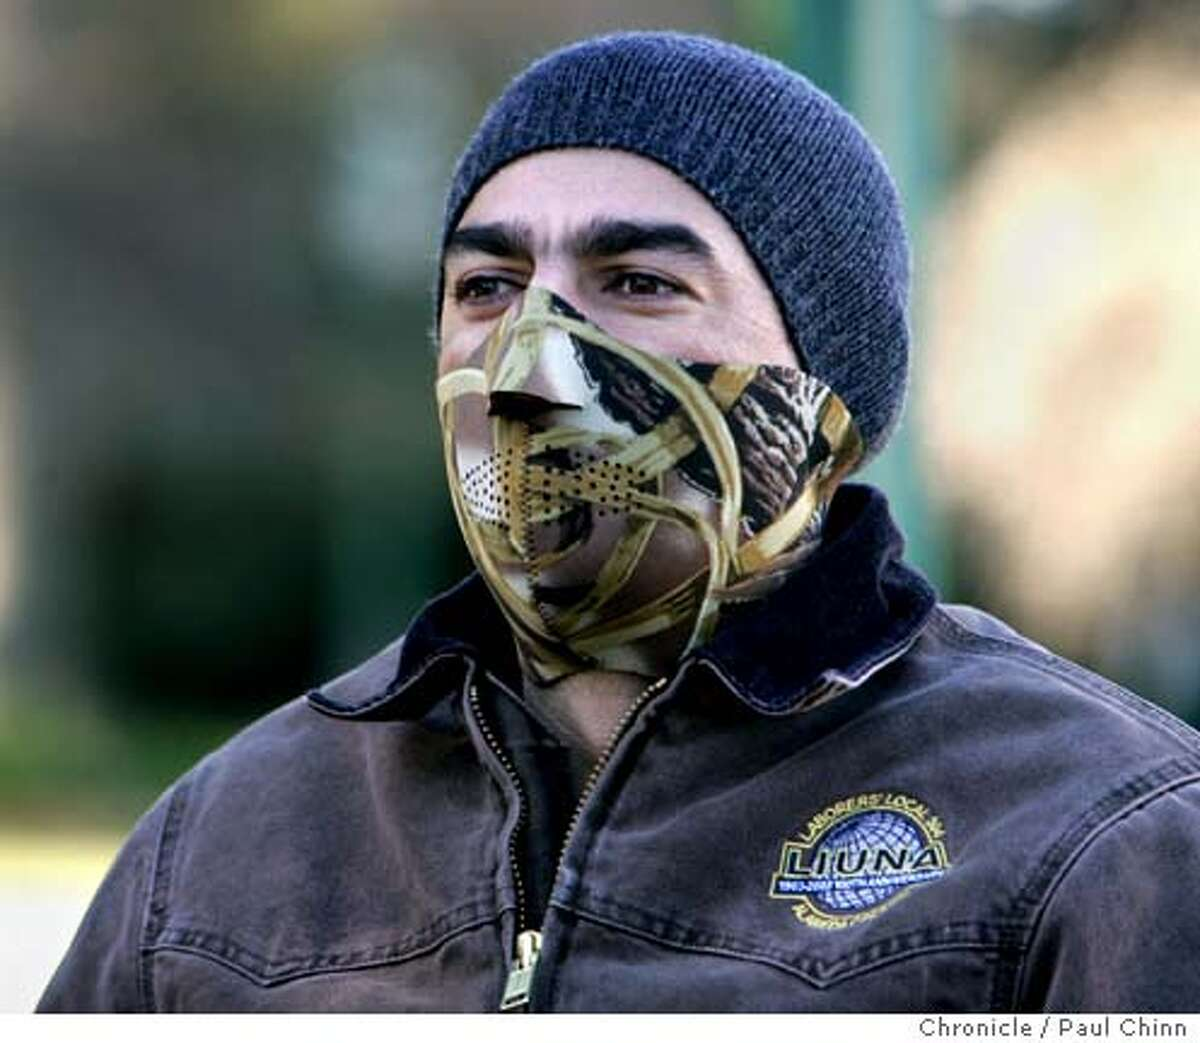 Fernando Estrada used a thermal mask to keep warm on another morning of near freezing temperatures in Oakland, Calif. on Saturday, Jan. 13, 2007. PAUL CHINN/The Chronicle **Fernando Estrada